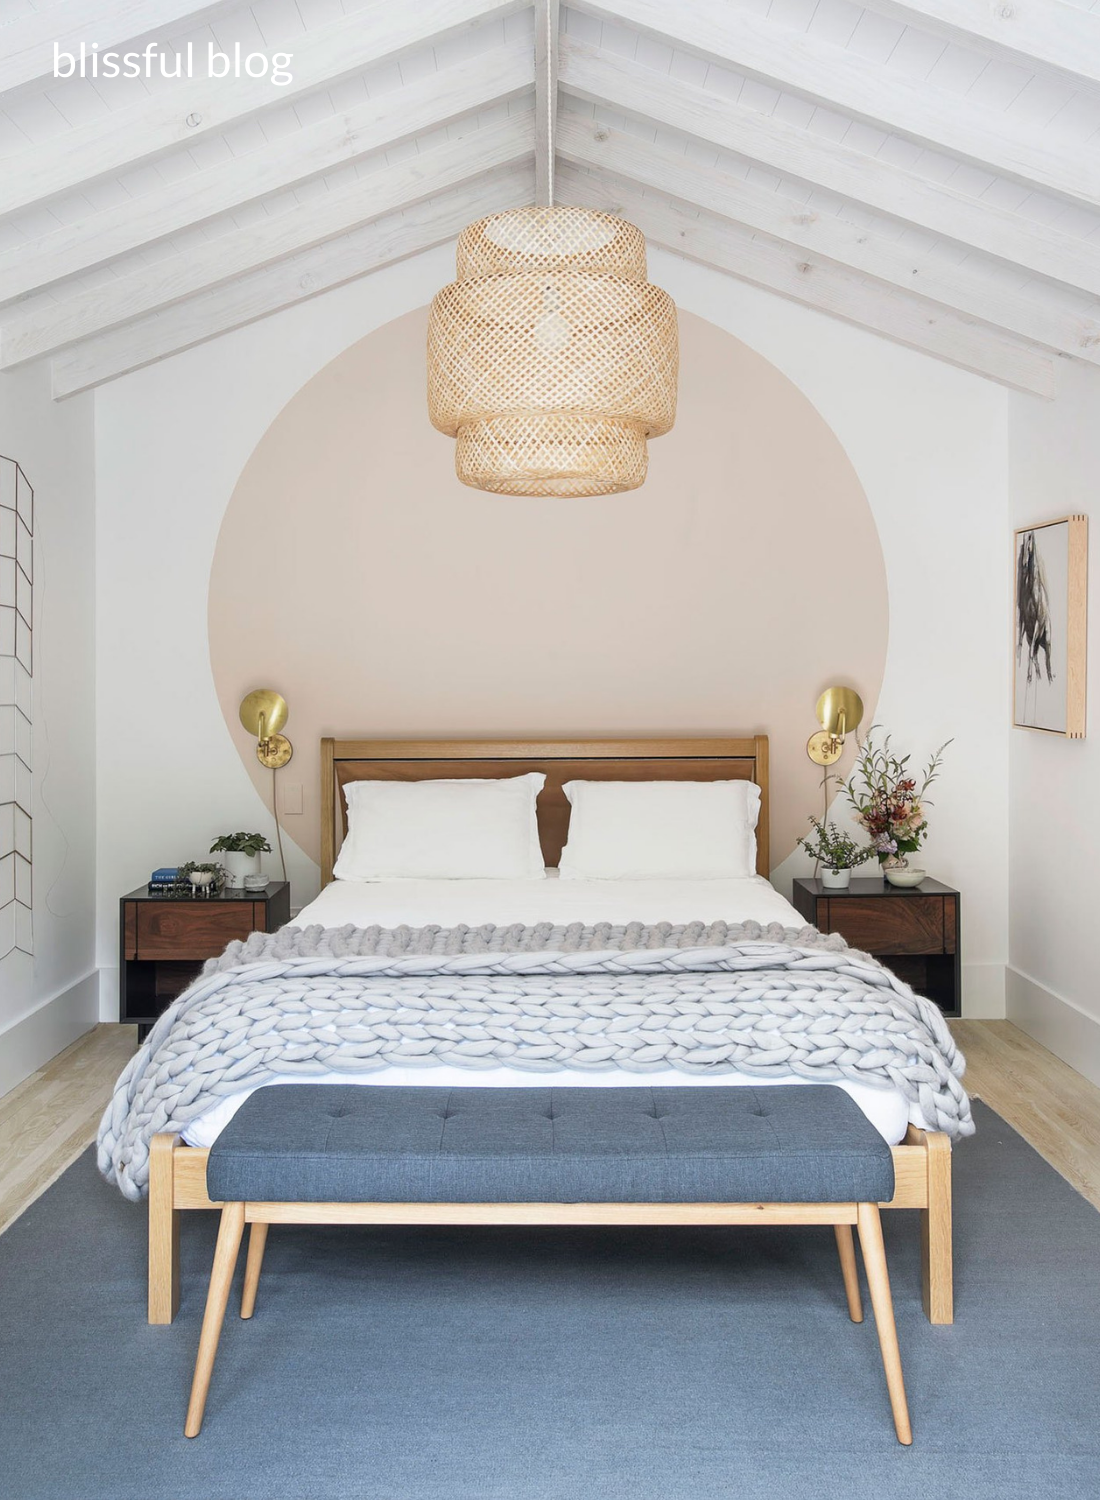 Bedroom with circular paint blocking feature and ikea rattan shade